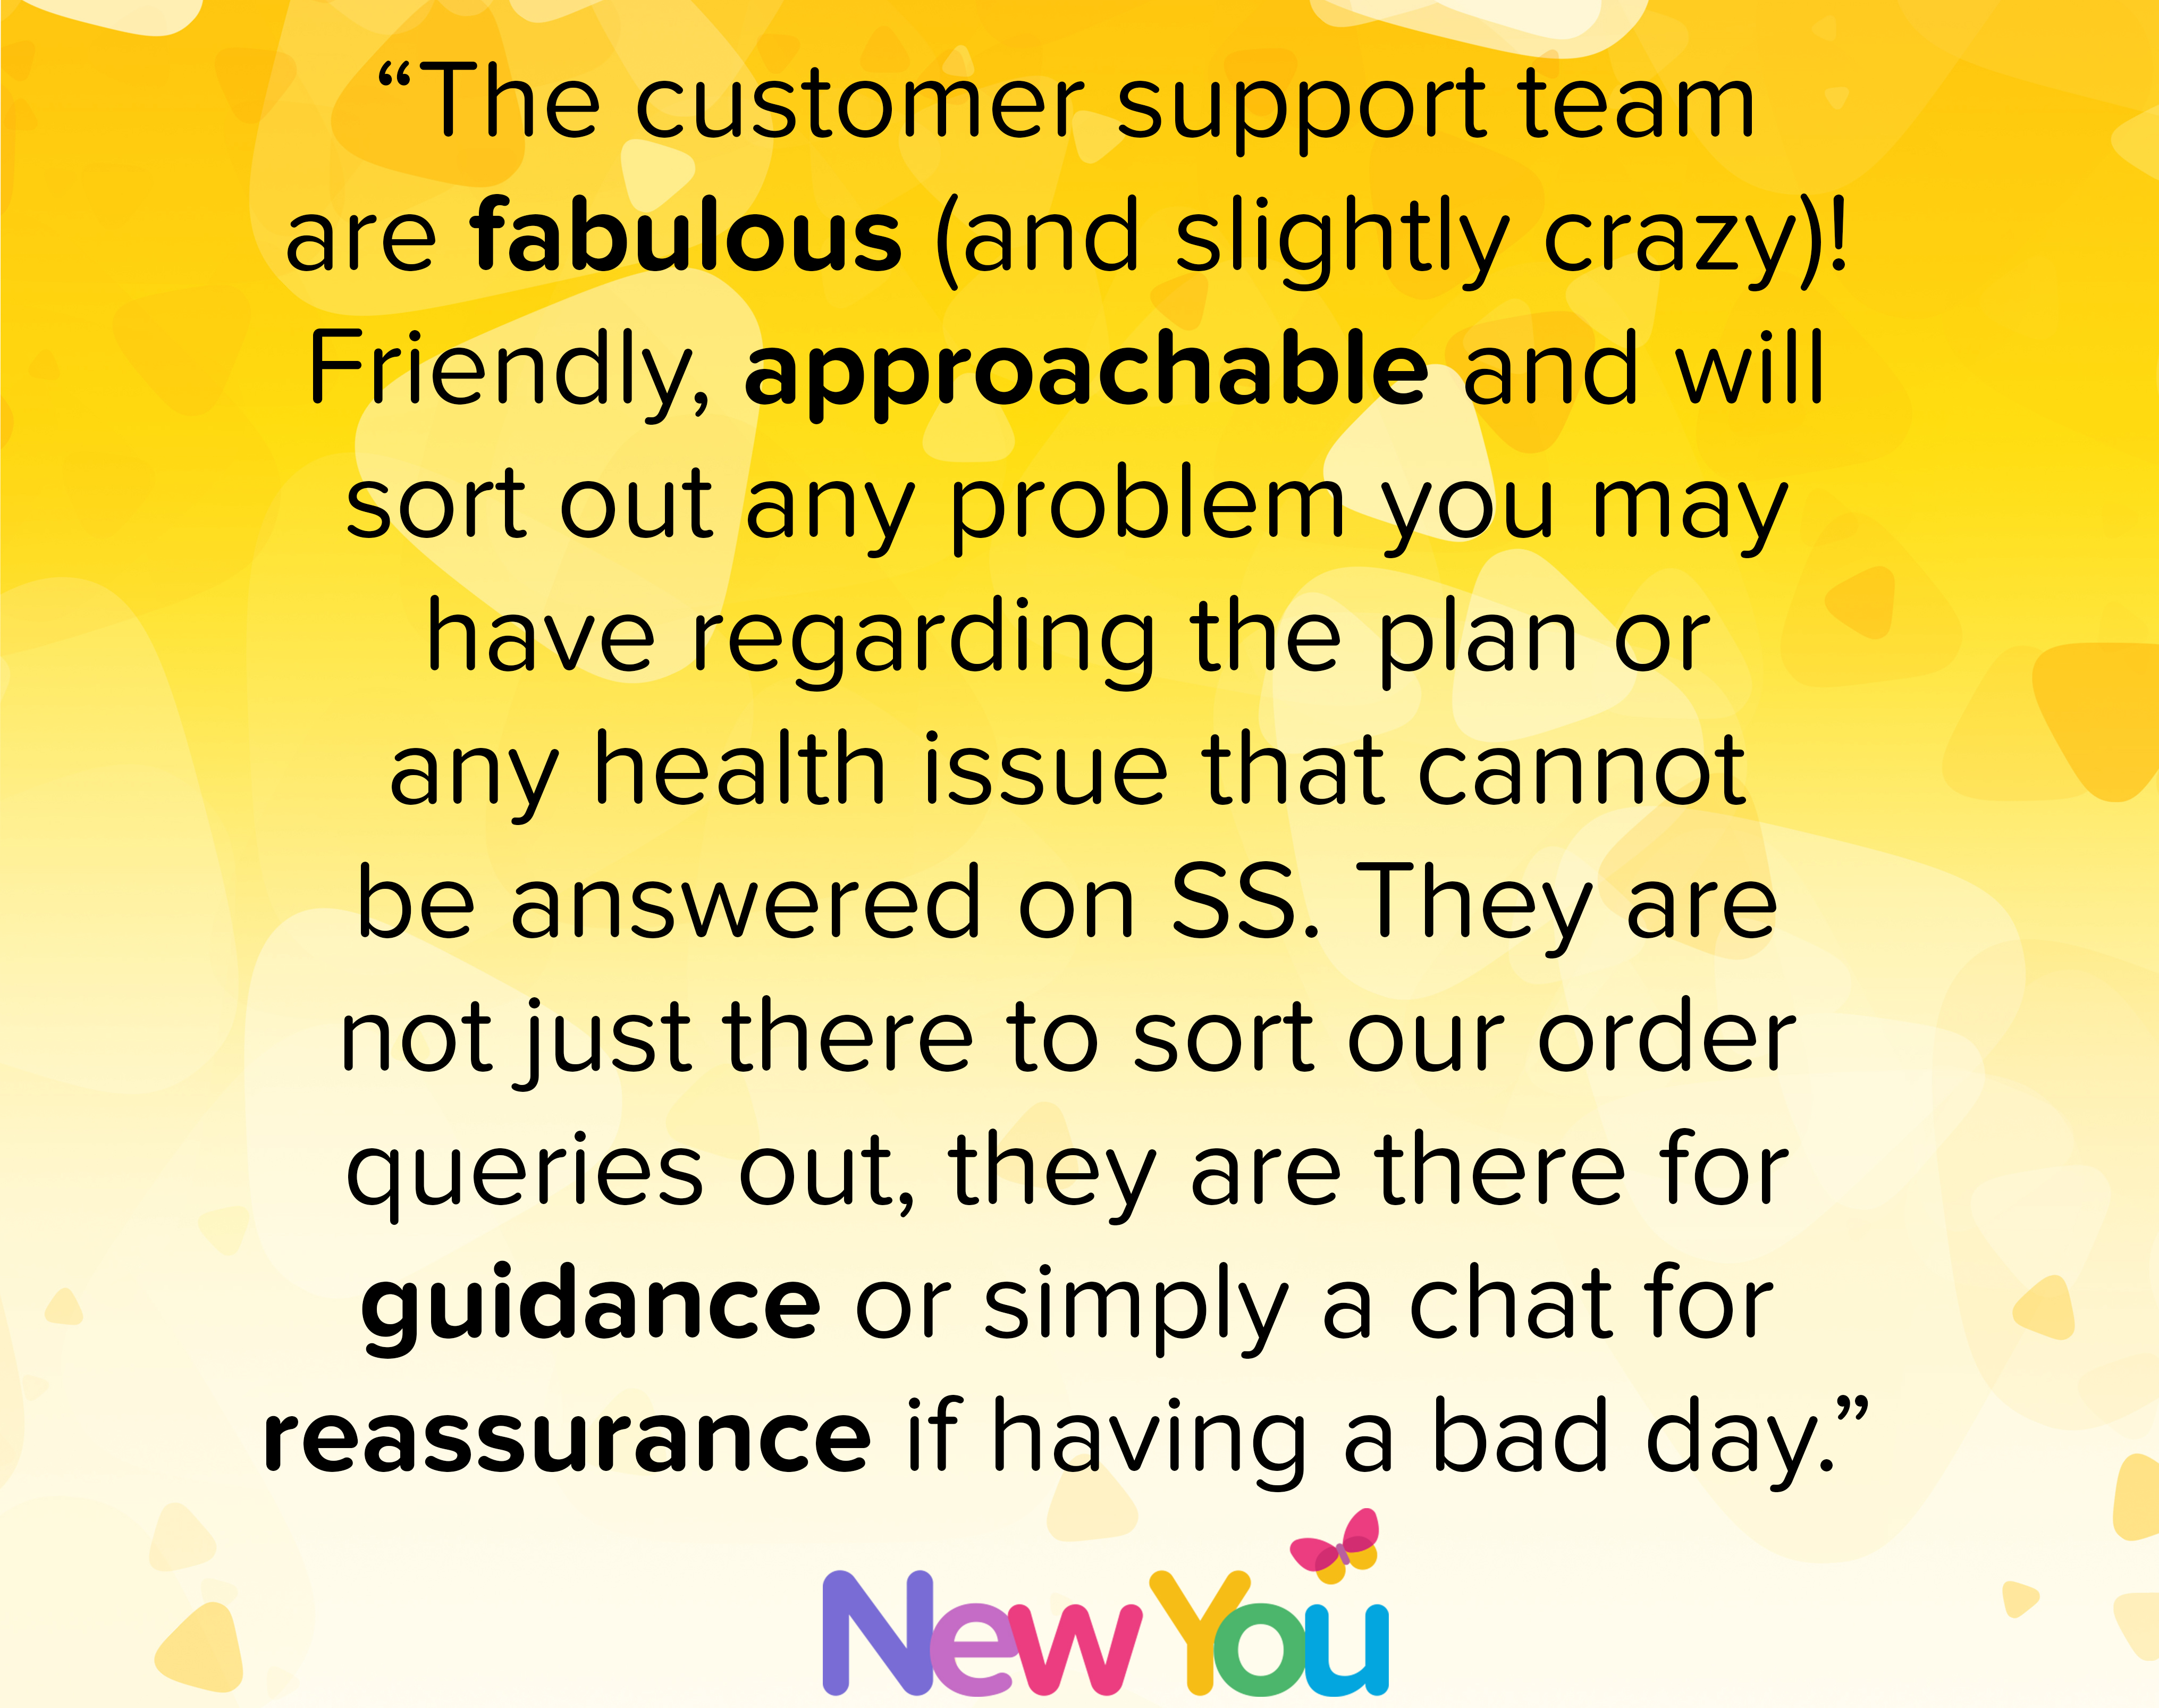 Candida talks about the amazing customer service team